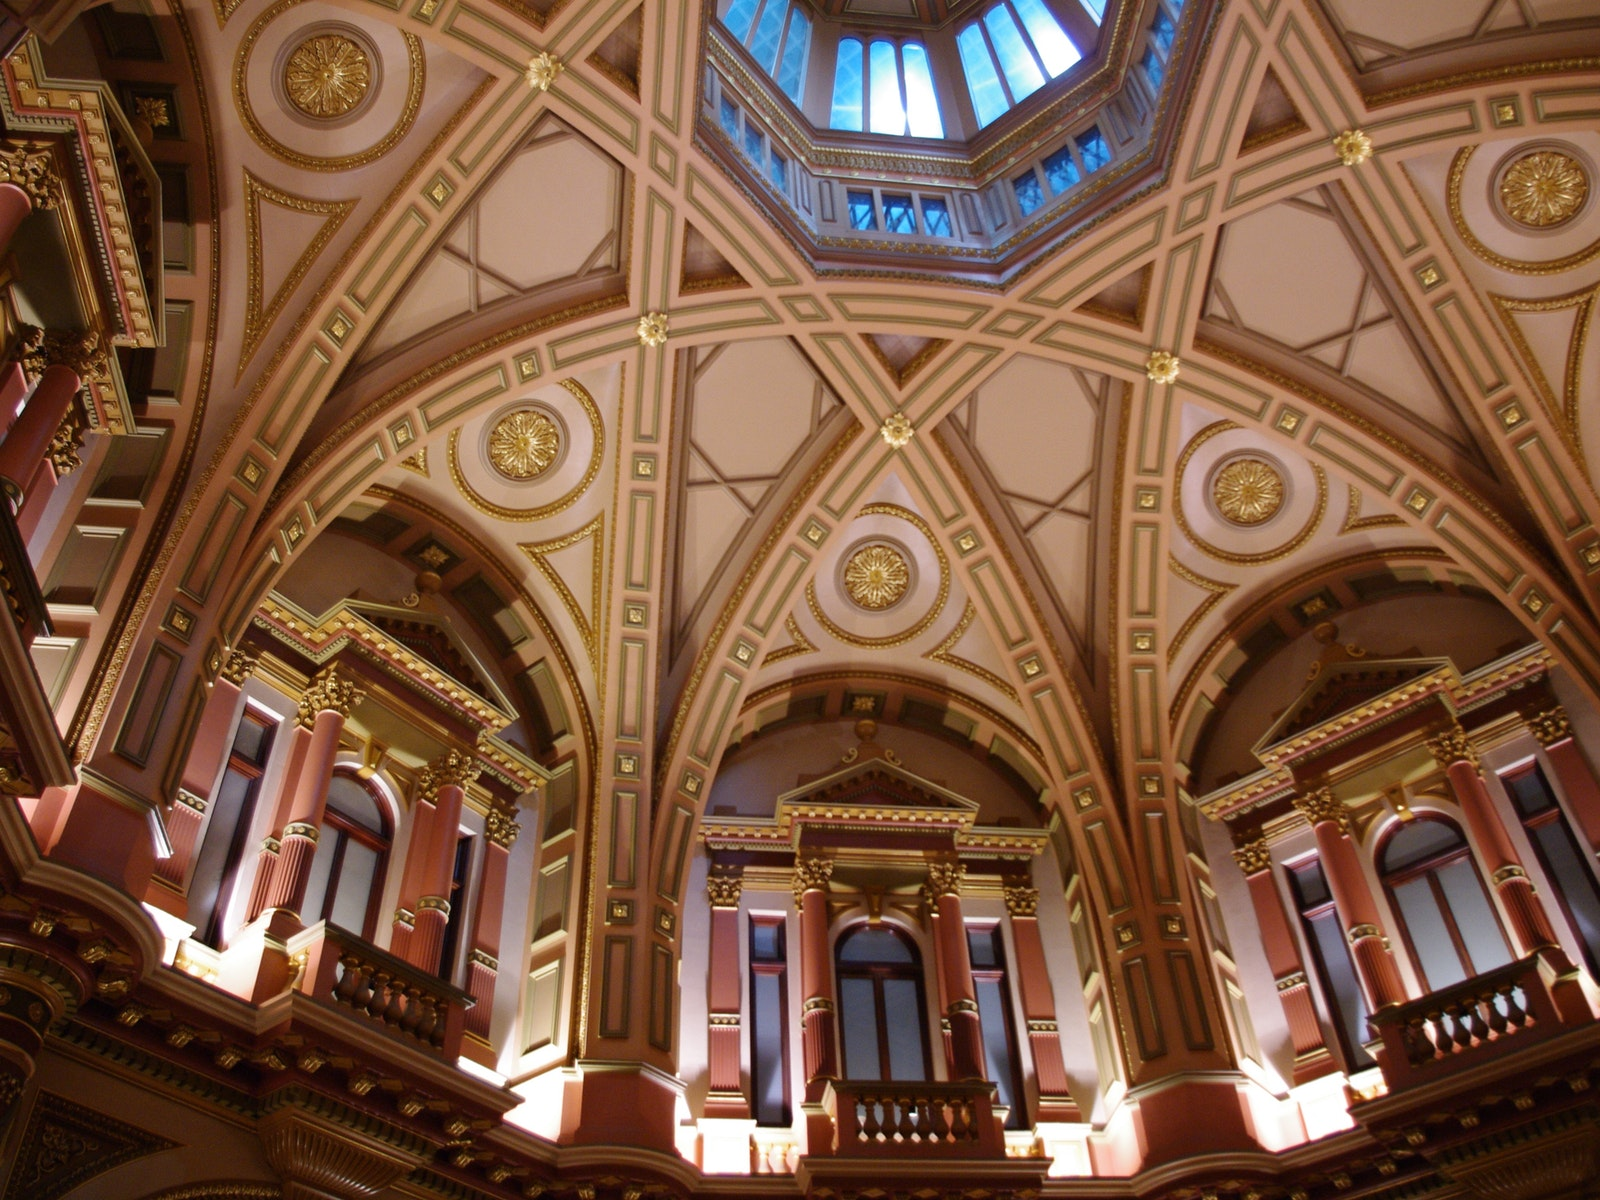 Visit the Gorgeous Dome at 333 on the Golden Mile Heritage Walk